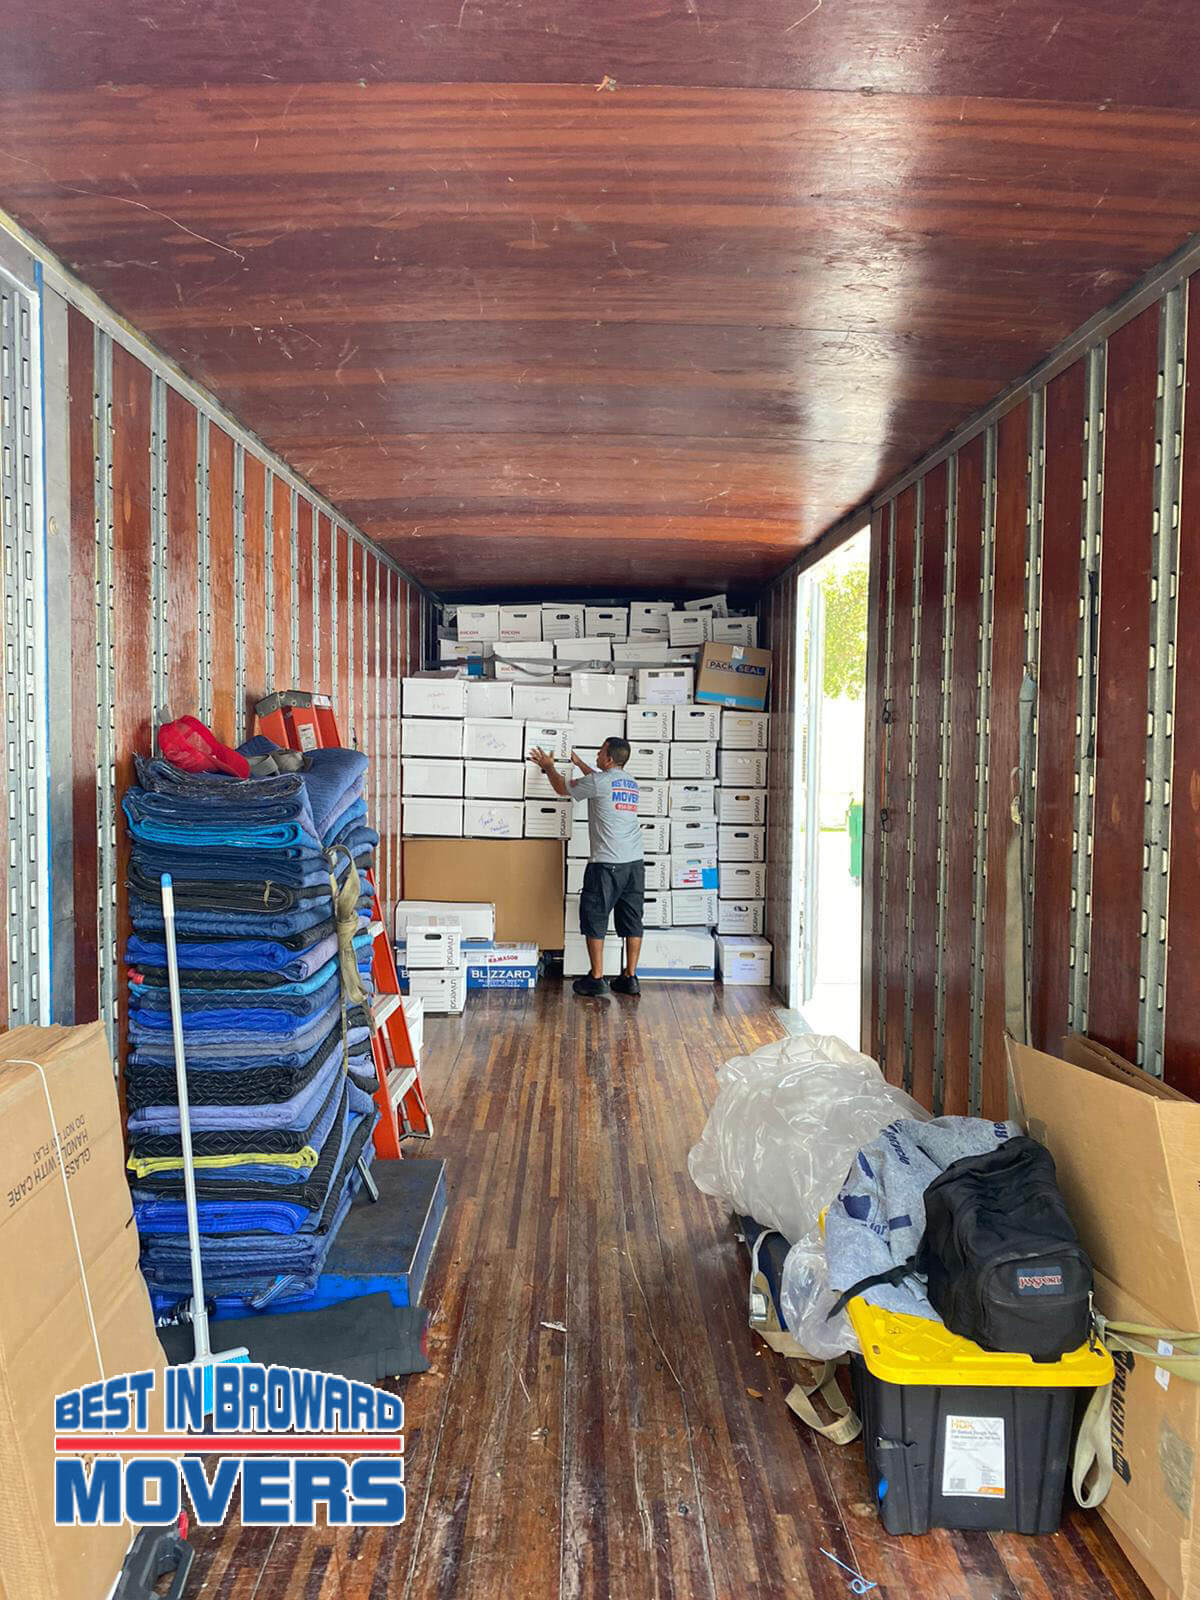 Cost For A Moving Company To Pack And Move A 4 Bedroom House Locally